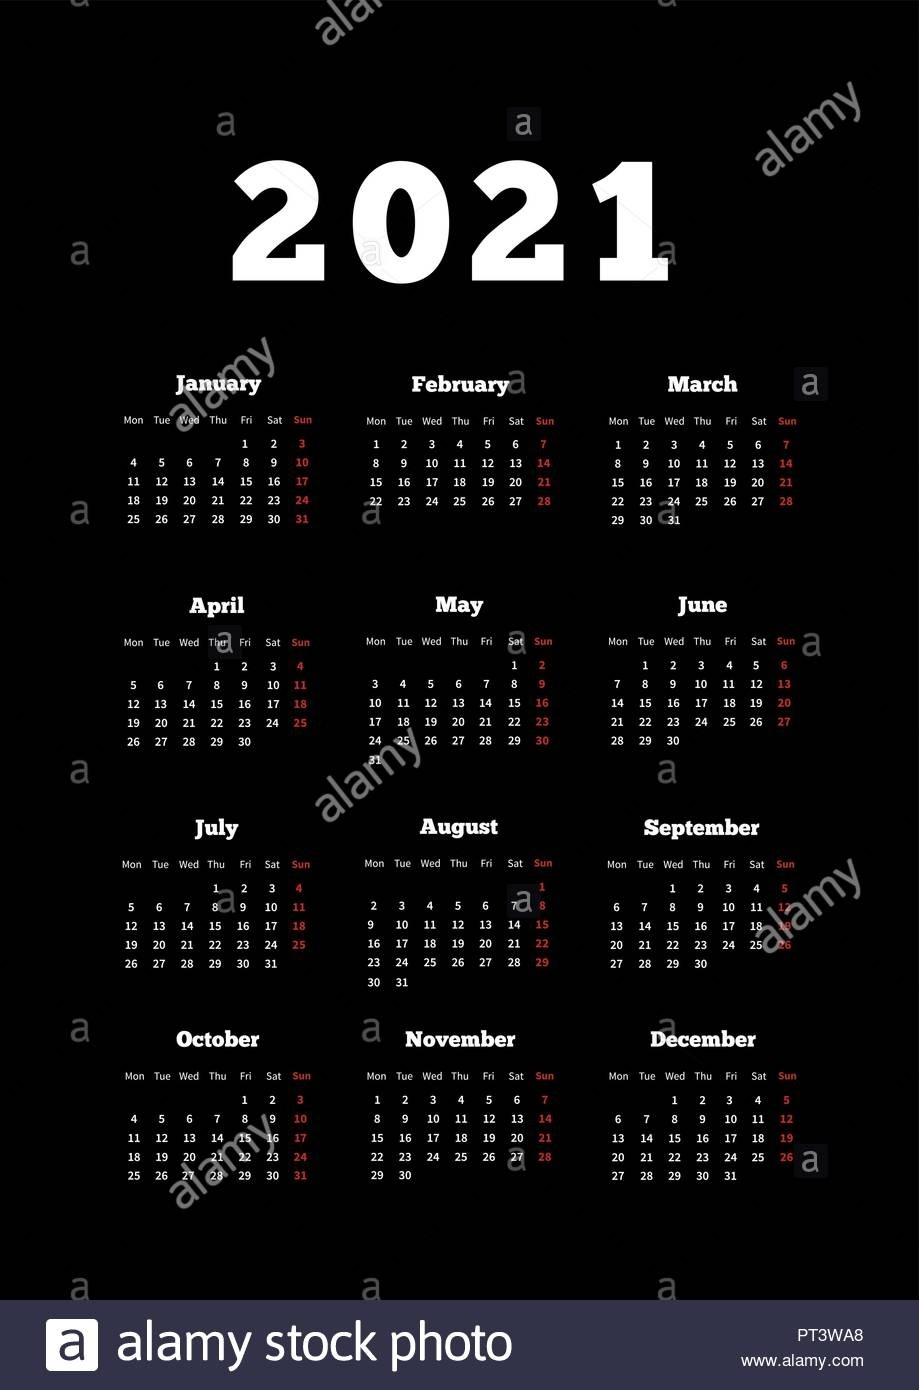 Calendar Of 2021 Year With Week Starting From Monday, A4  Calendar 2021 With Gregorian Dates